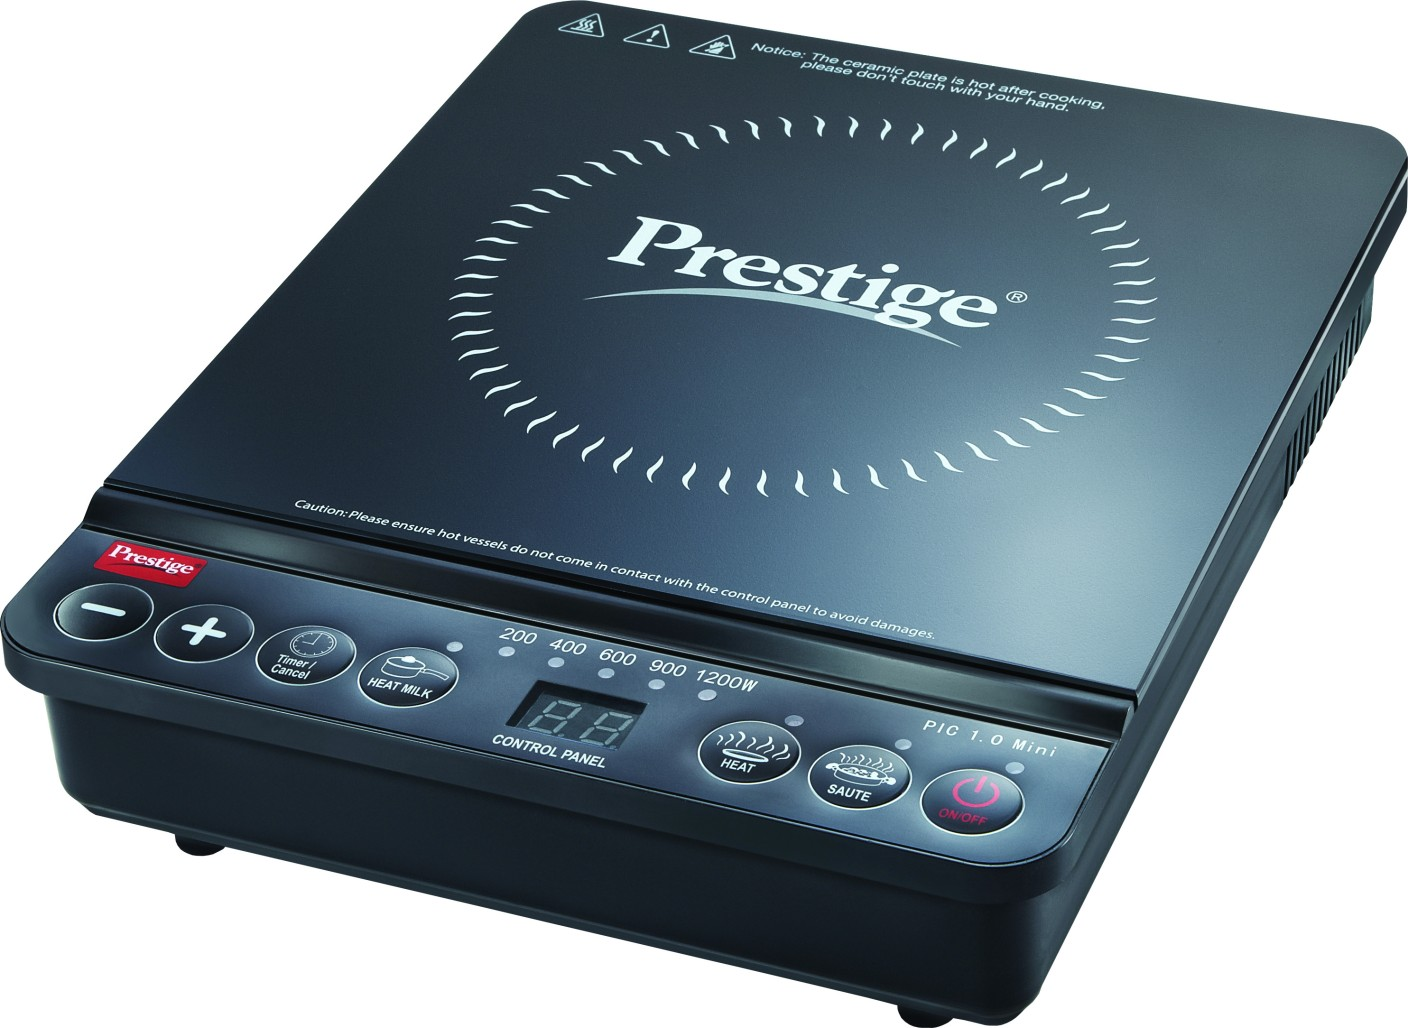 Prestige PIC 1.0 Mini Induction Cooktop. ADD TO CART